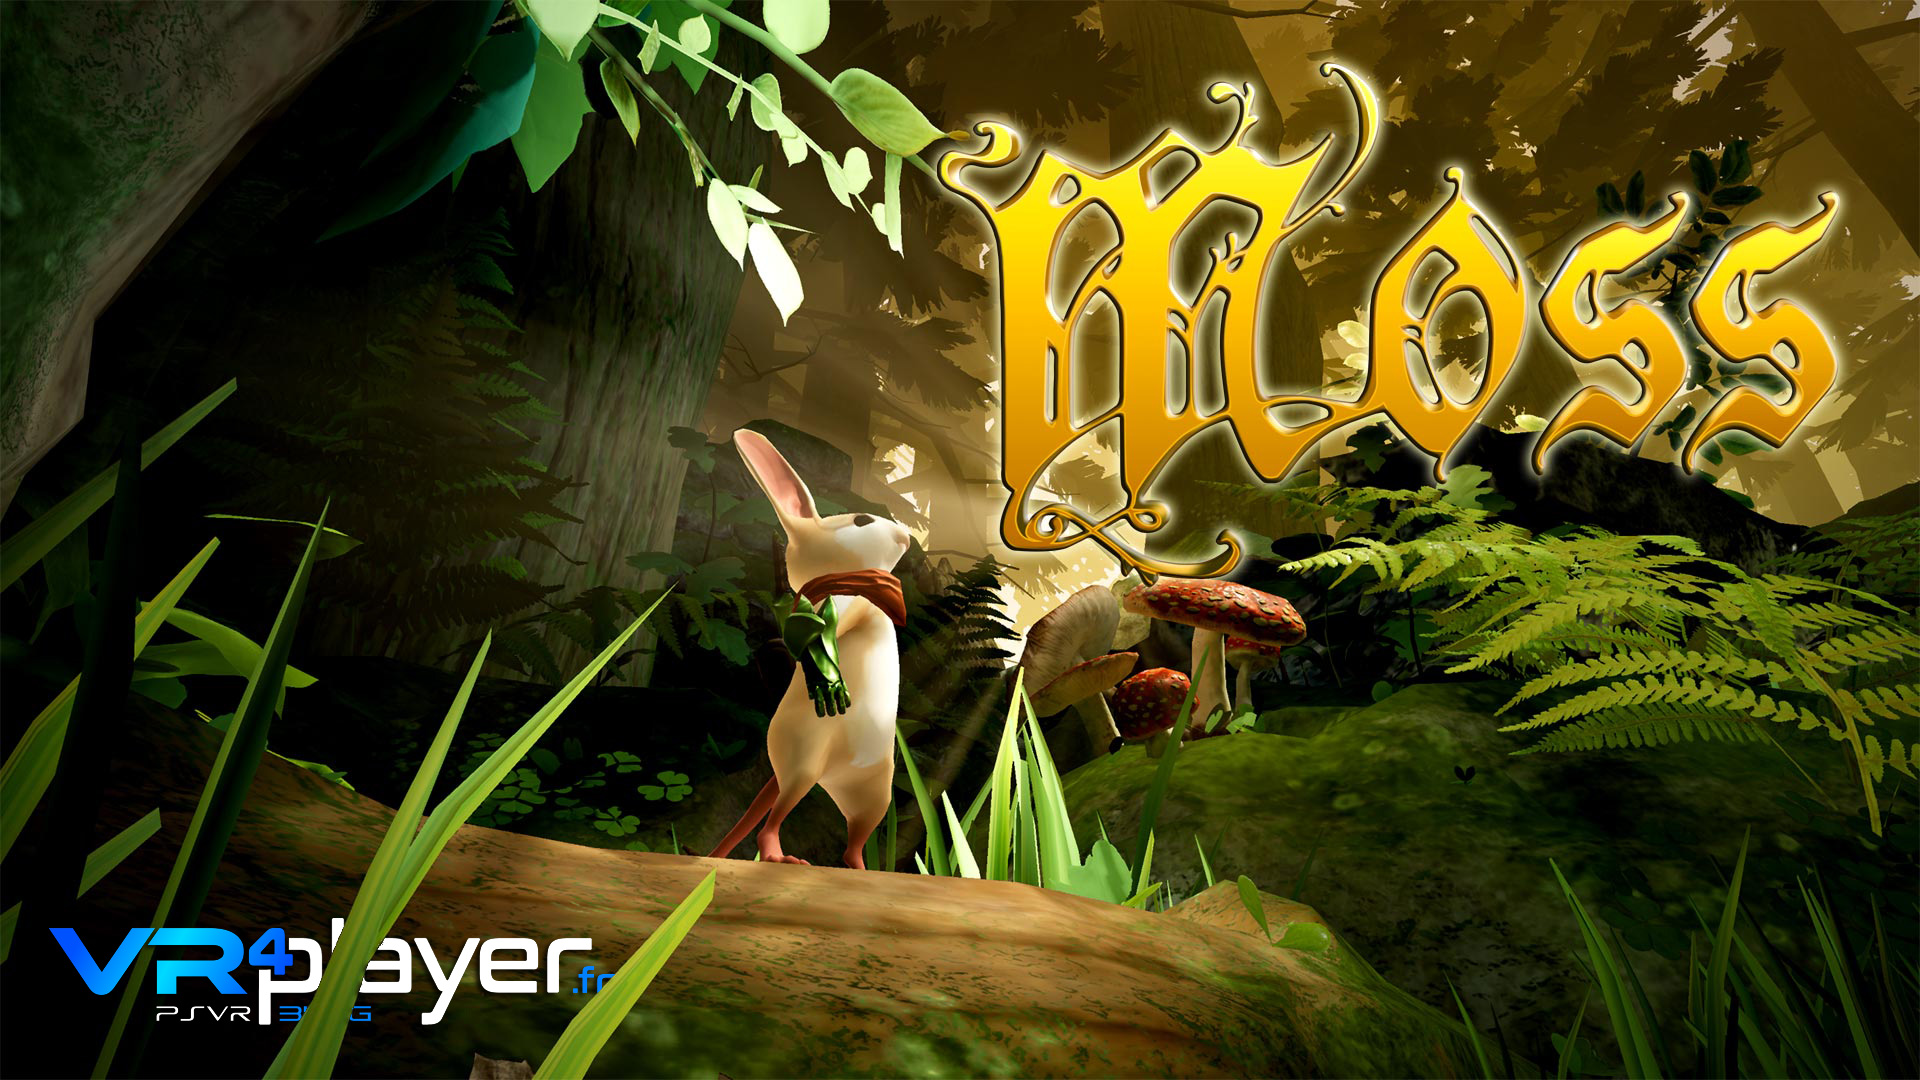 MOSS PlayStation VR vr4player.fr